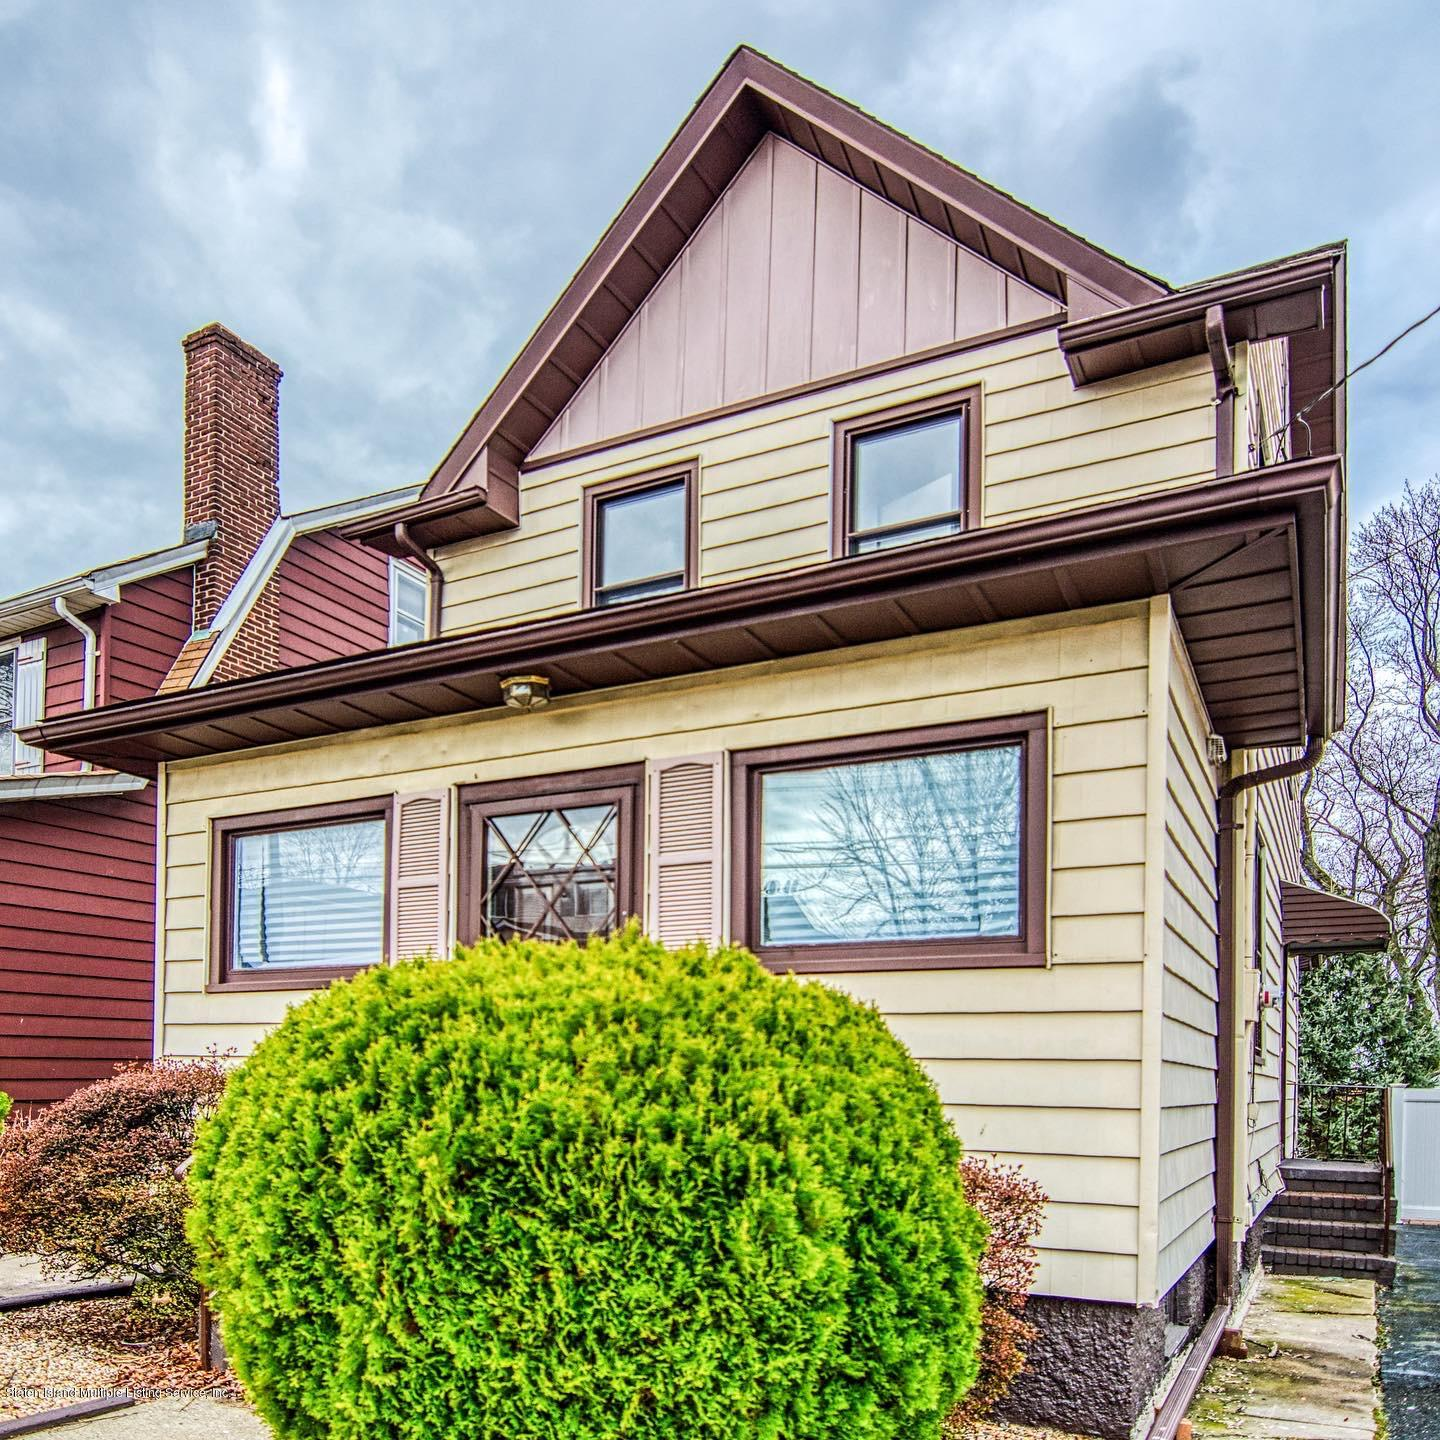 Single Family - Detached 54 Quinlan Avenue  Staten Island, NY 10314, MLS-1135997-2